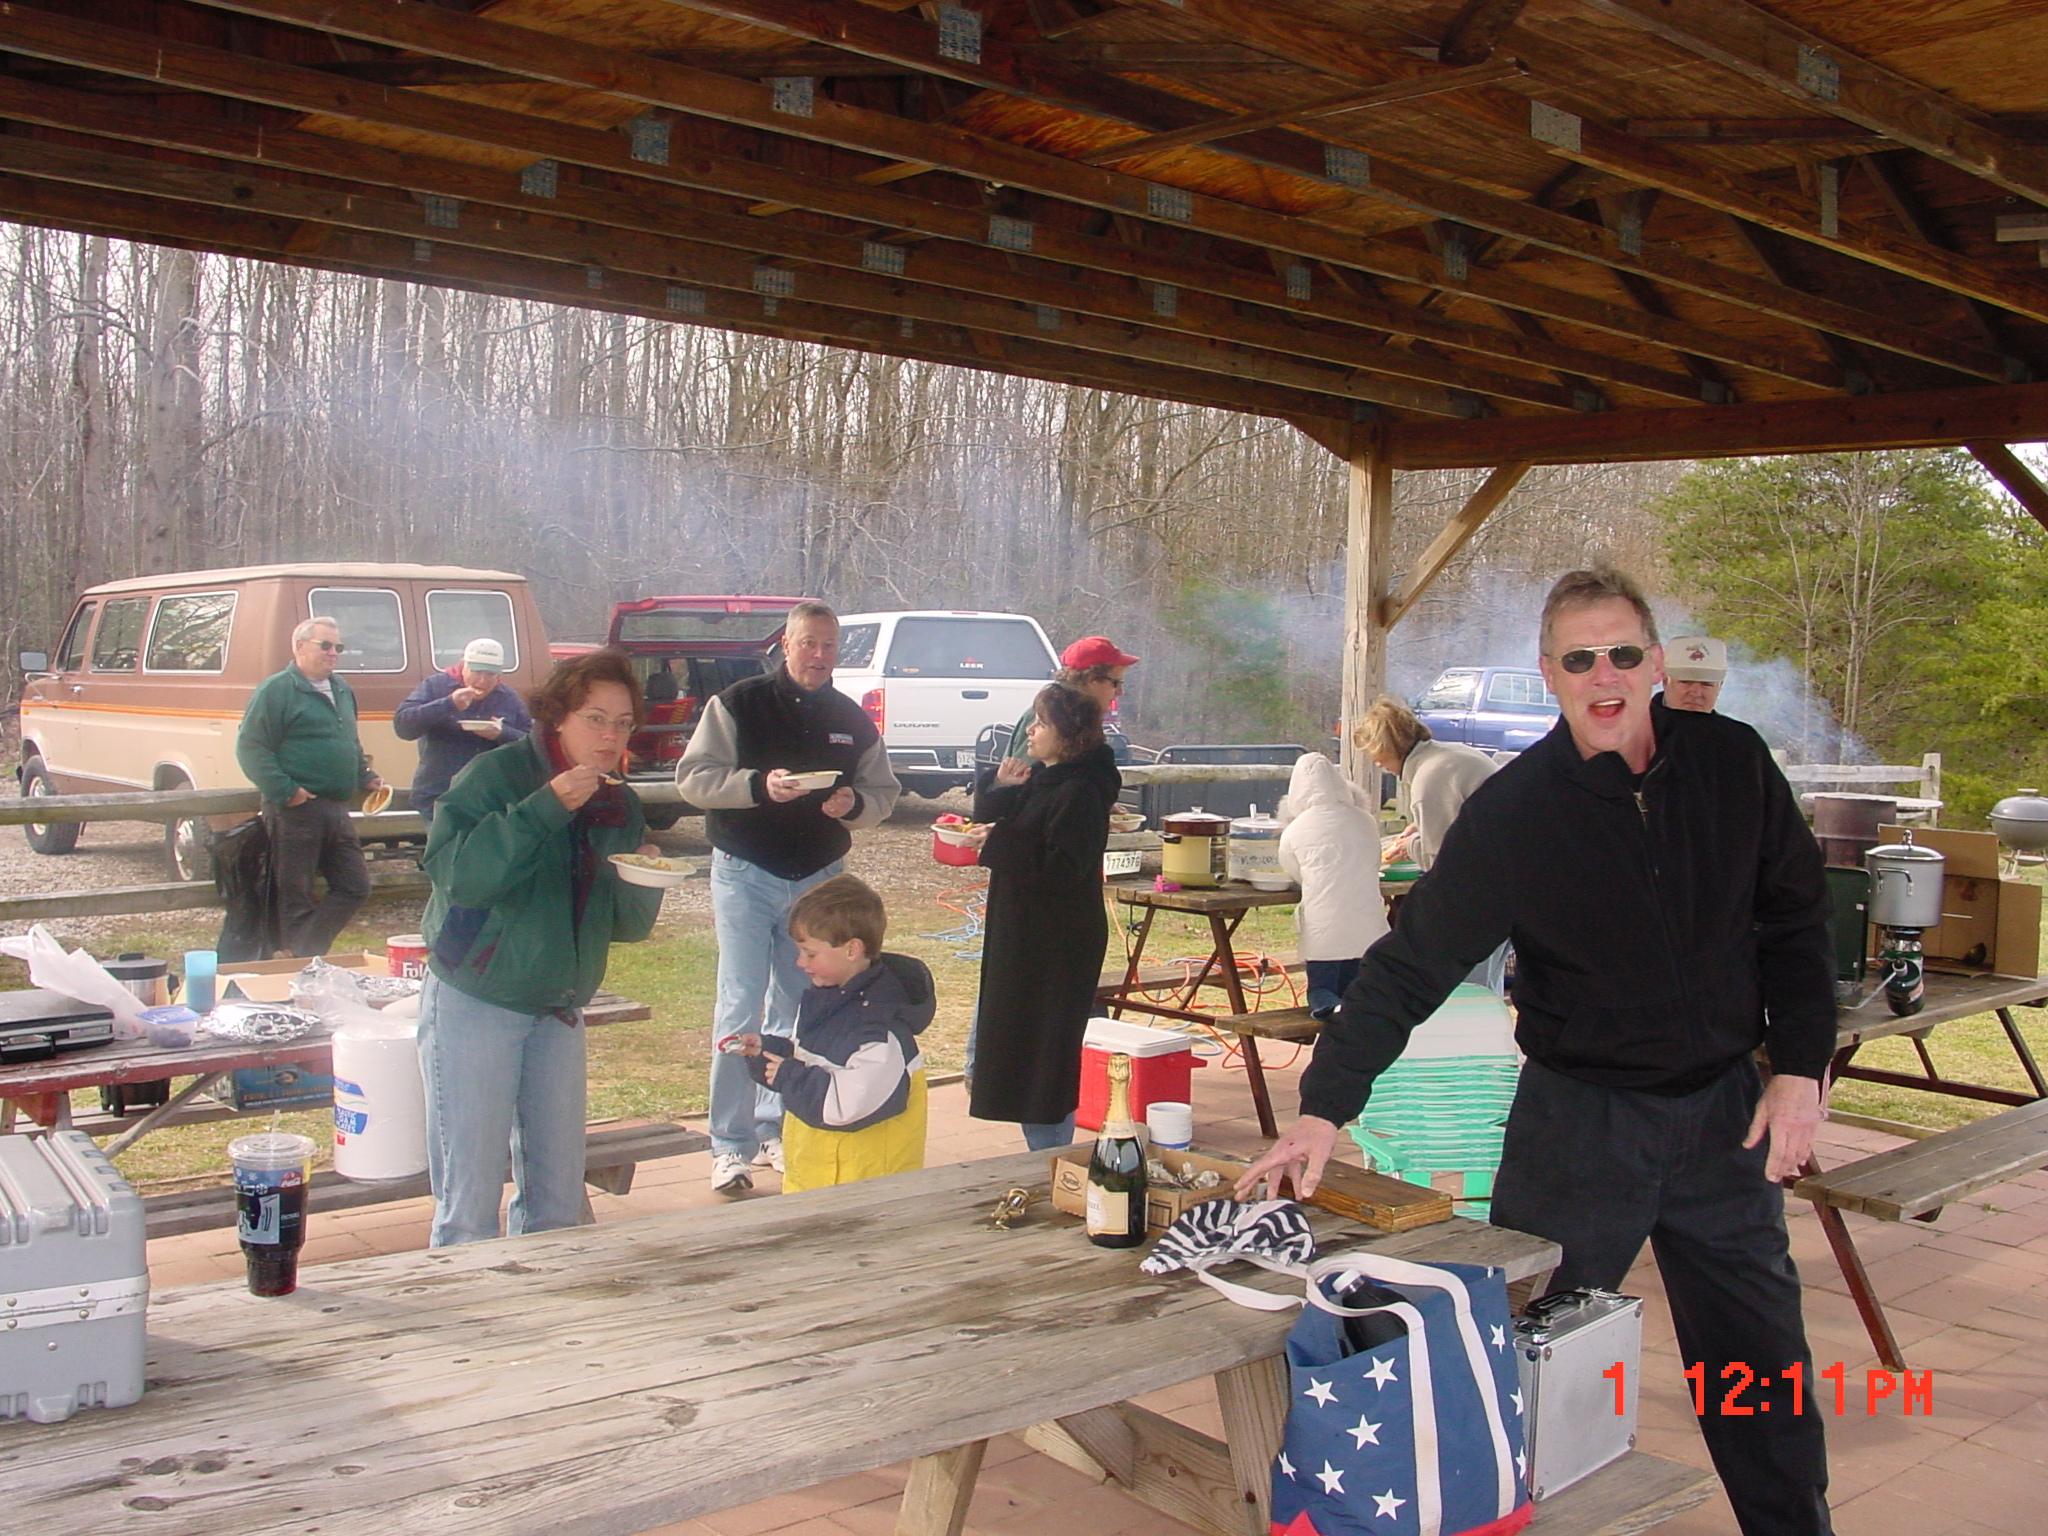 new-years-day-fun-fly-2004-27